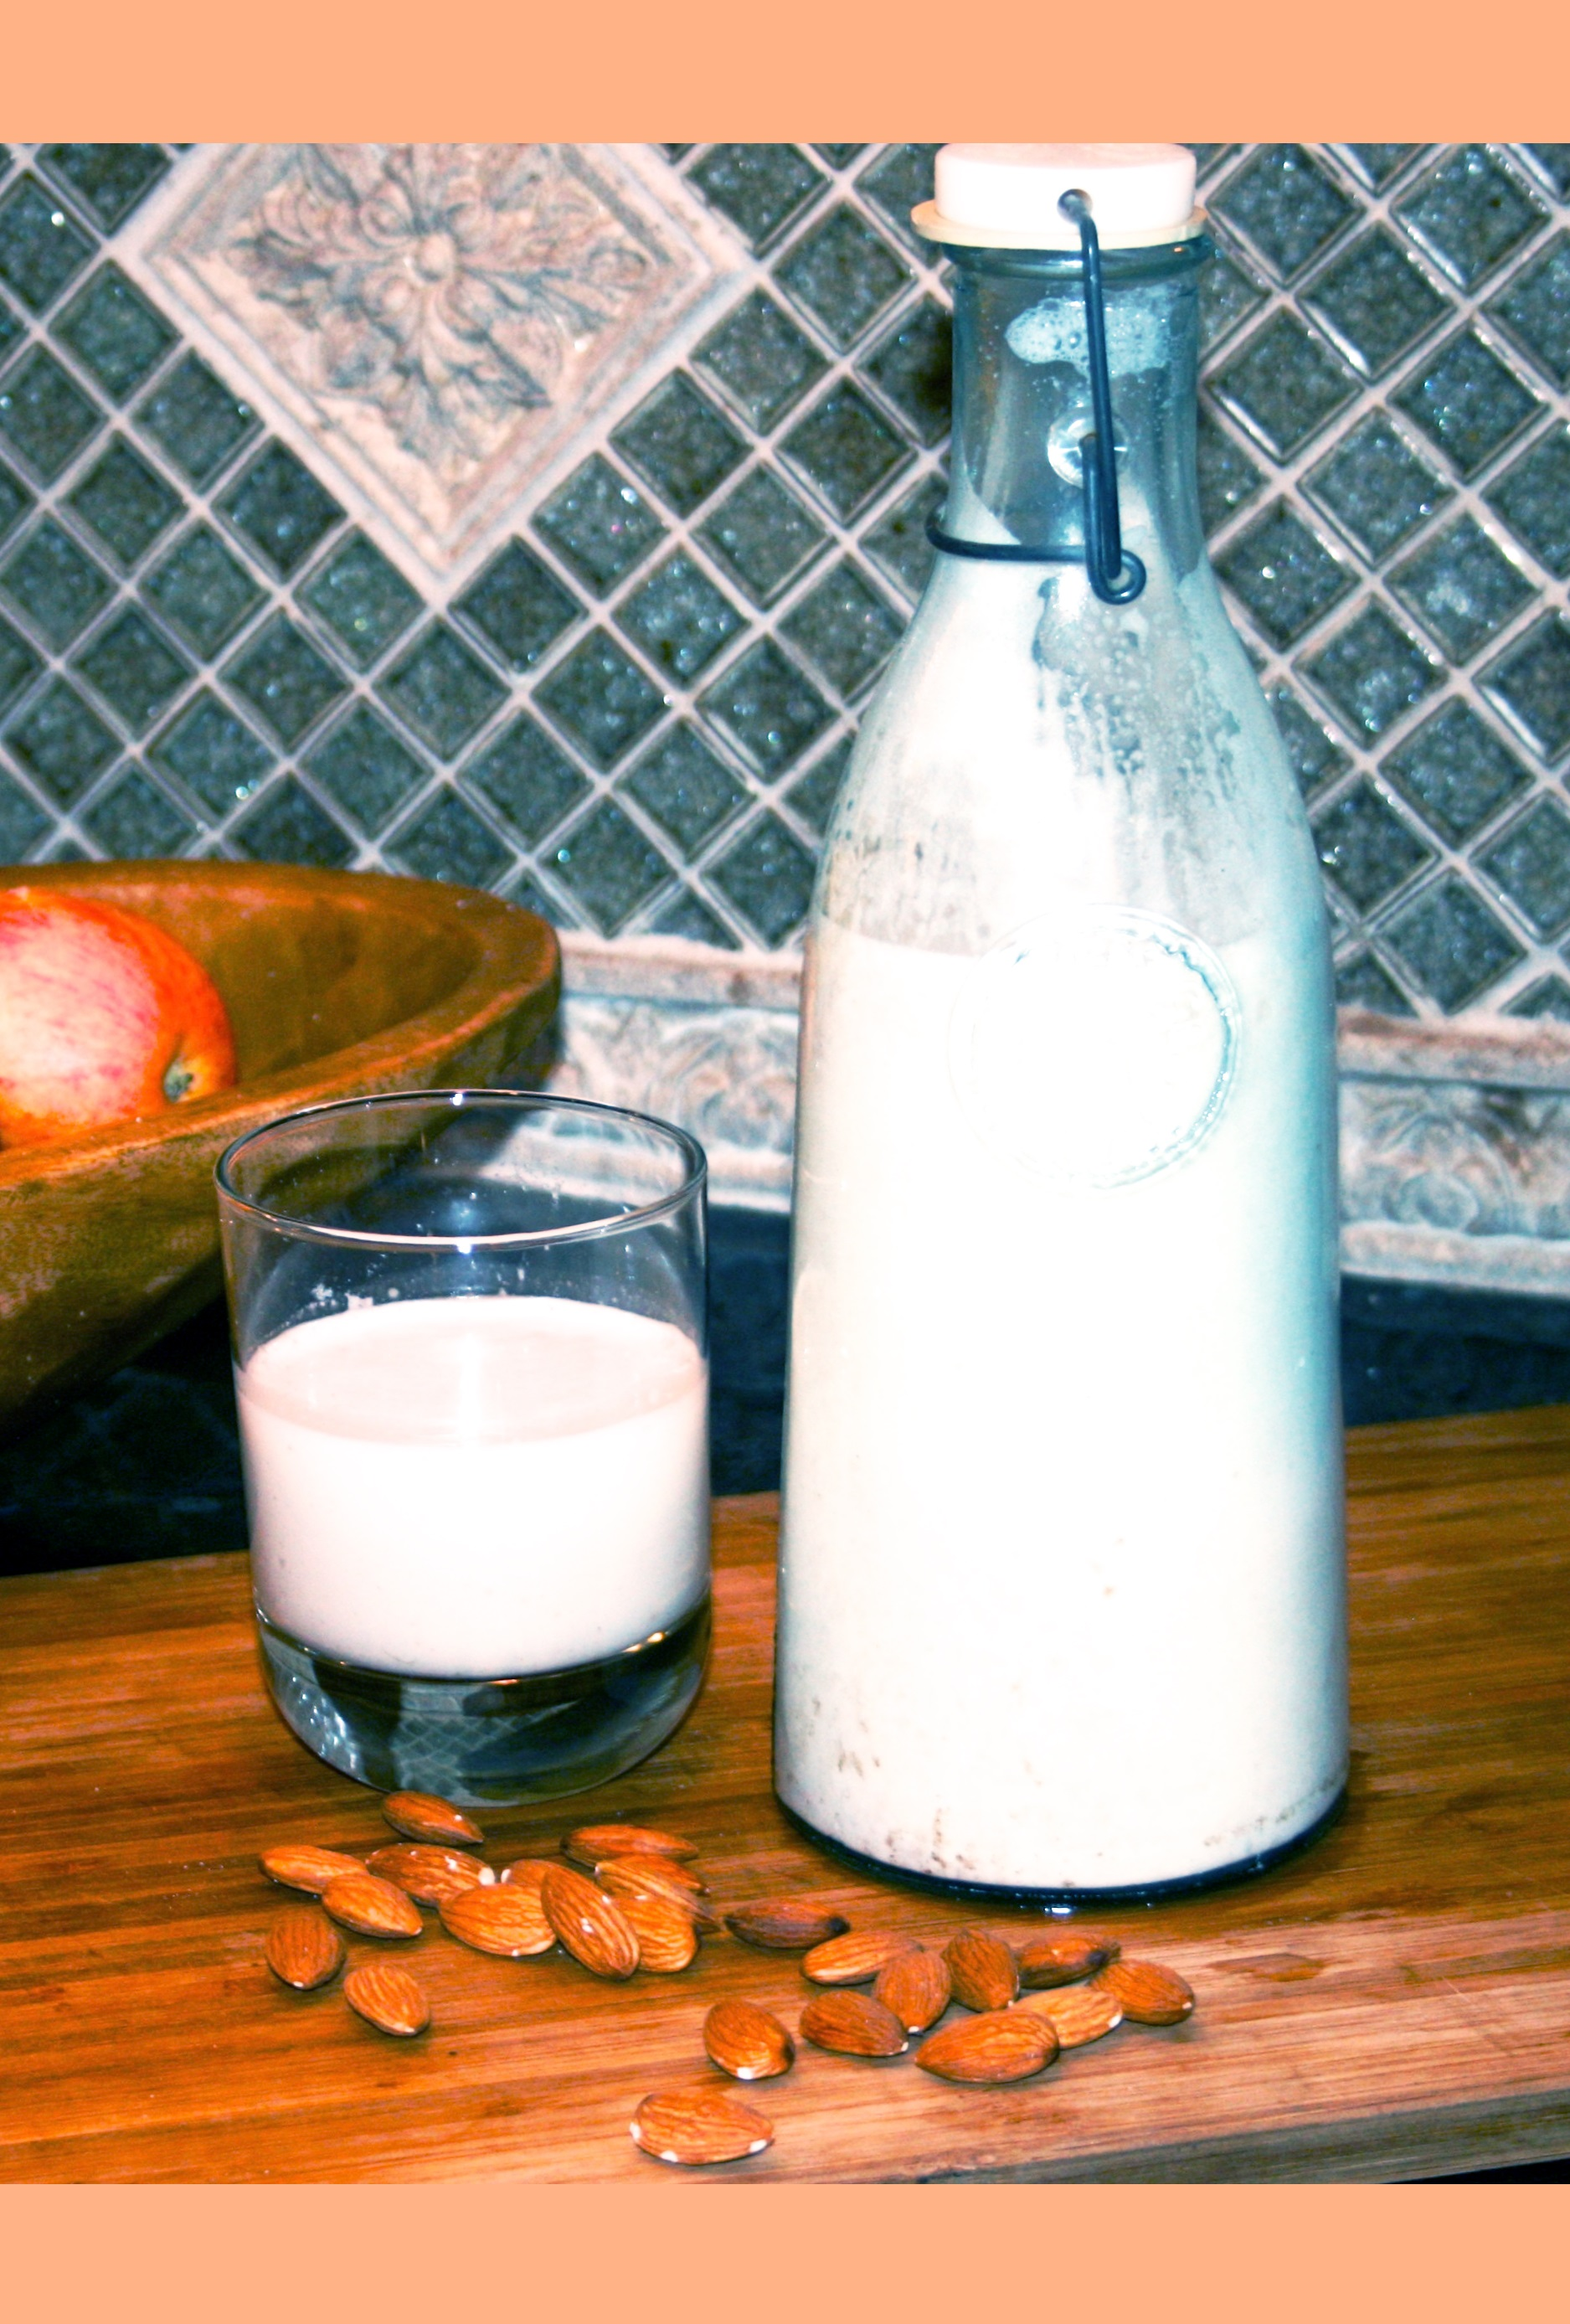 turkeyrecipepgalmond milk